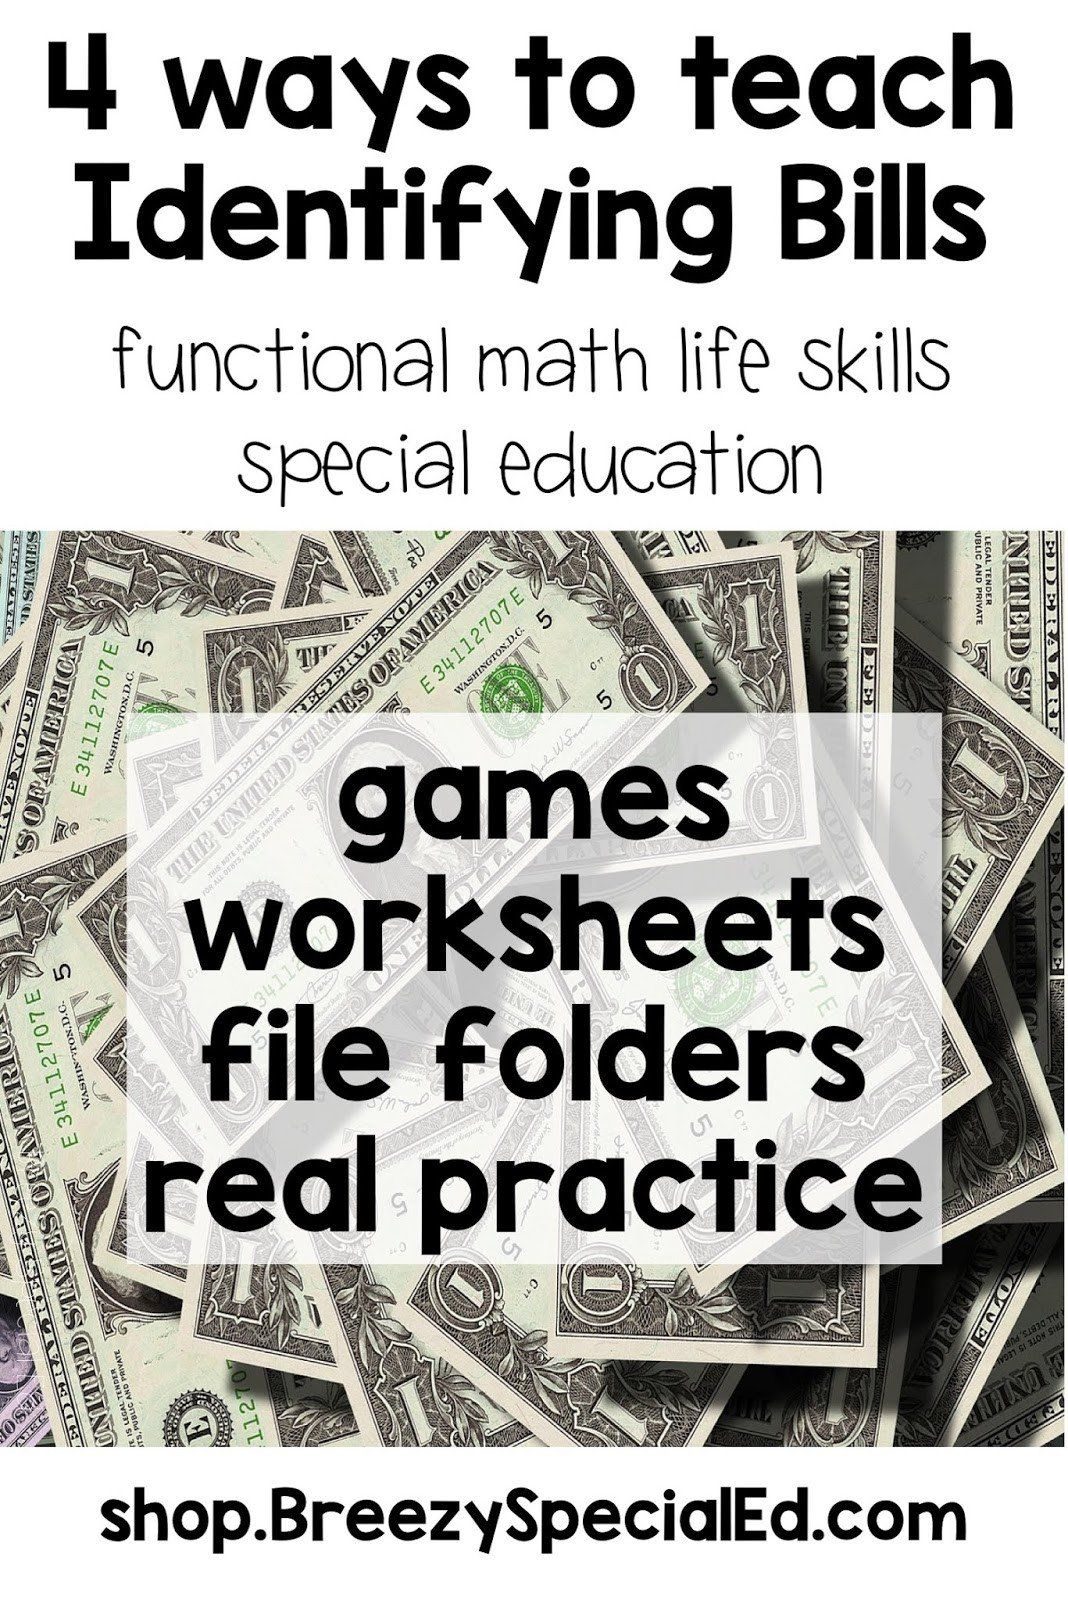 Functional Math Worksheets Special Education Making Money Iep Goals More Functional Breezy Life Skills Special Education Special Education Math Teaching Money